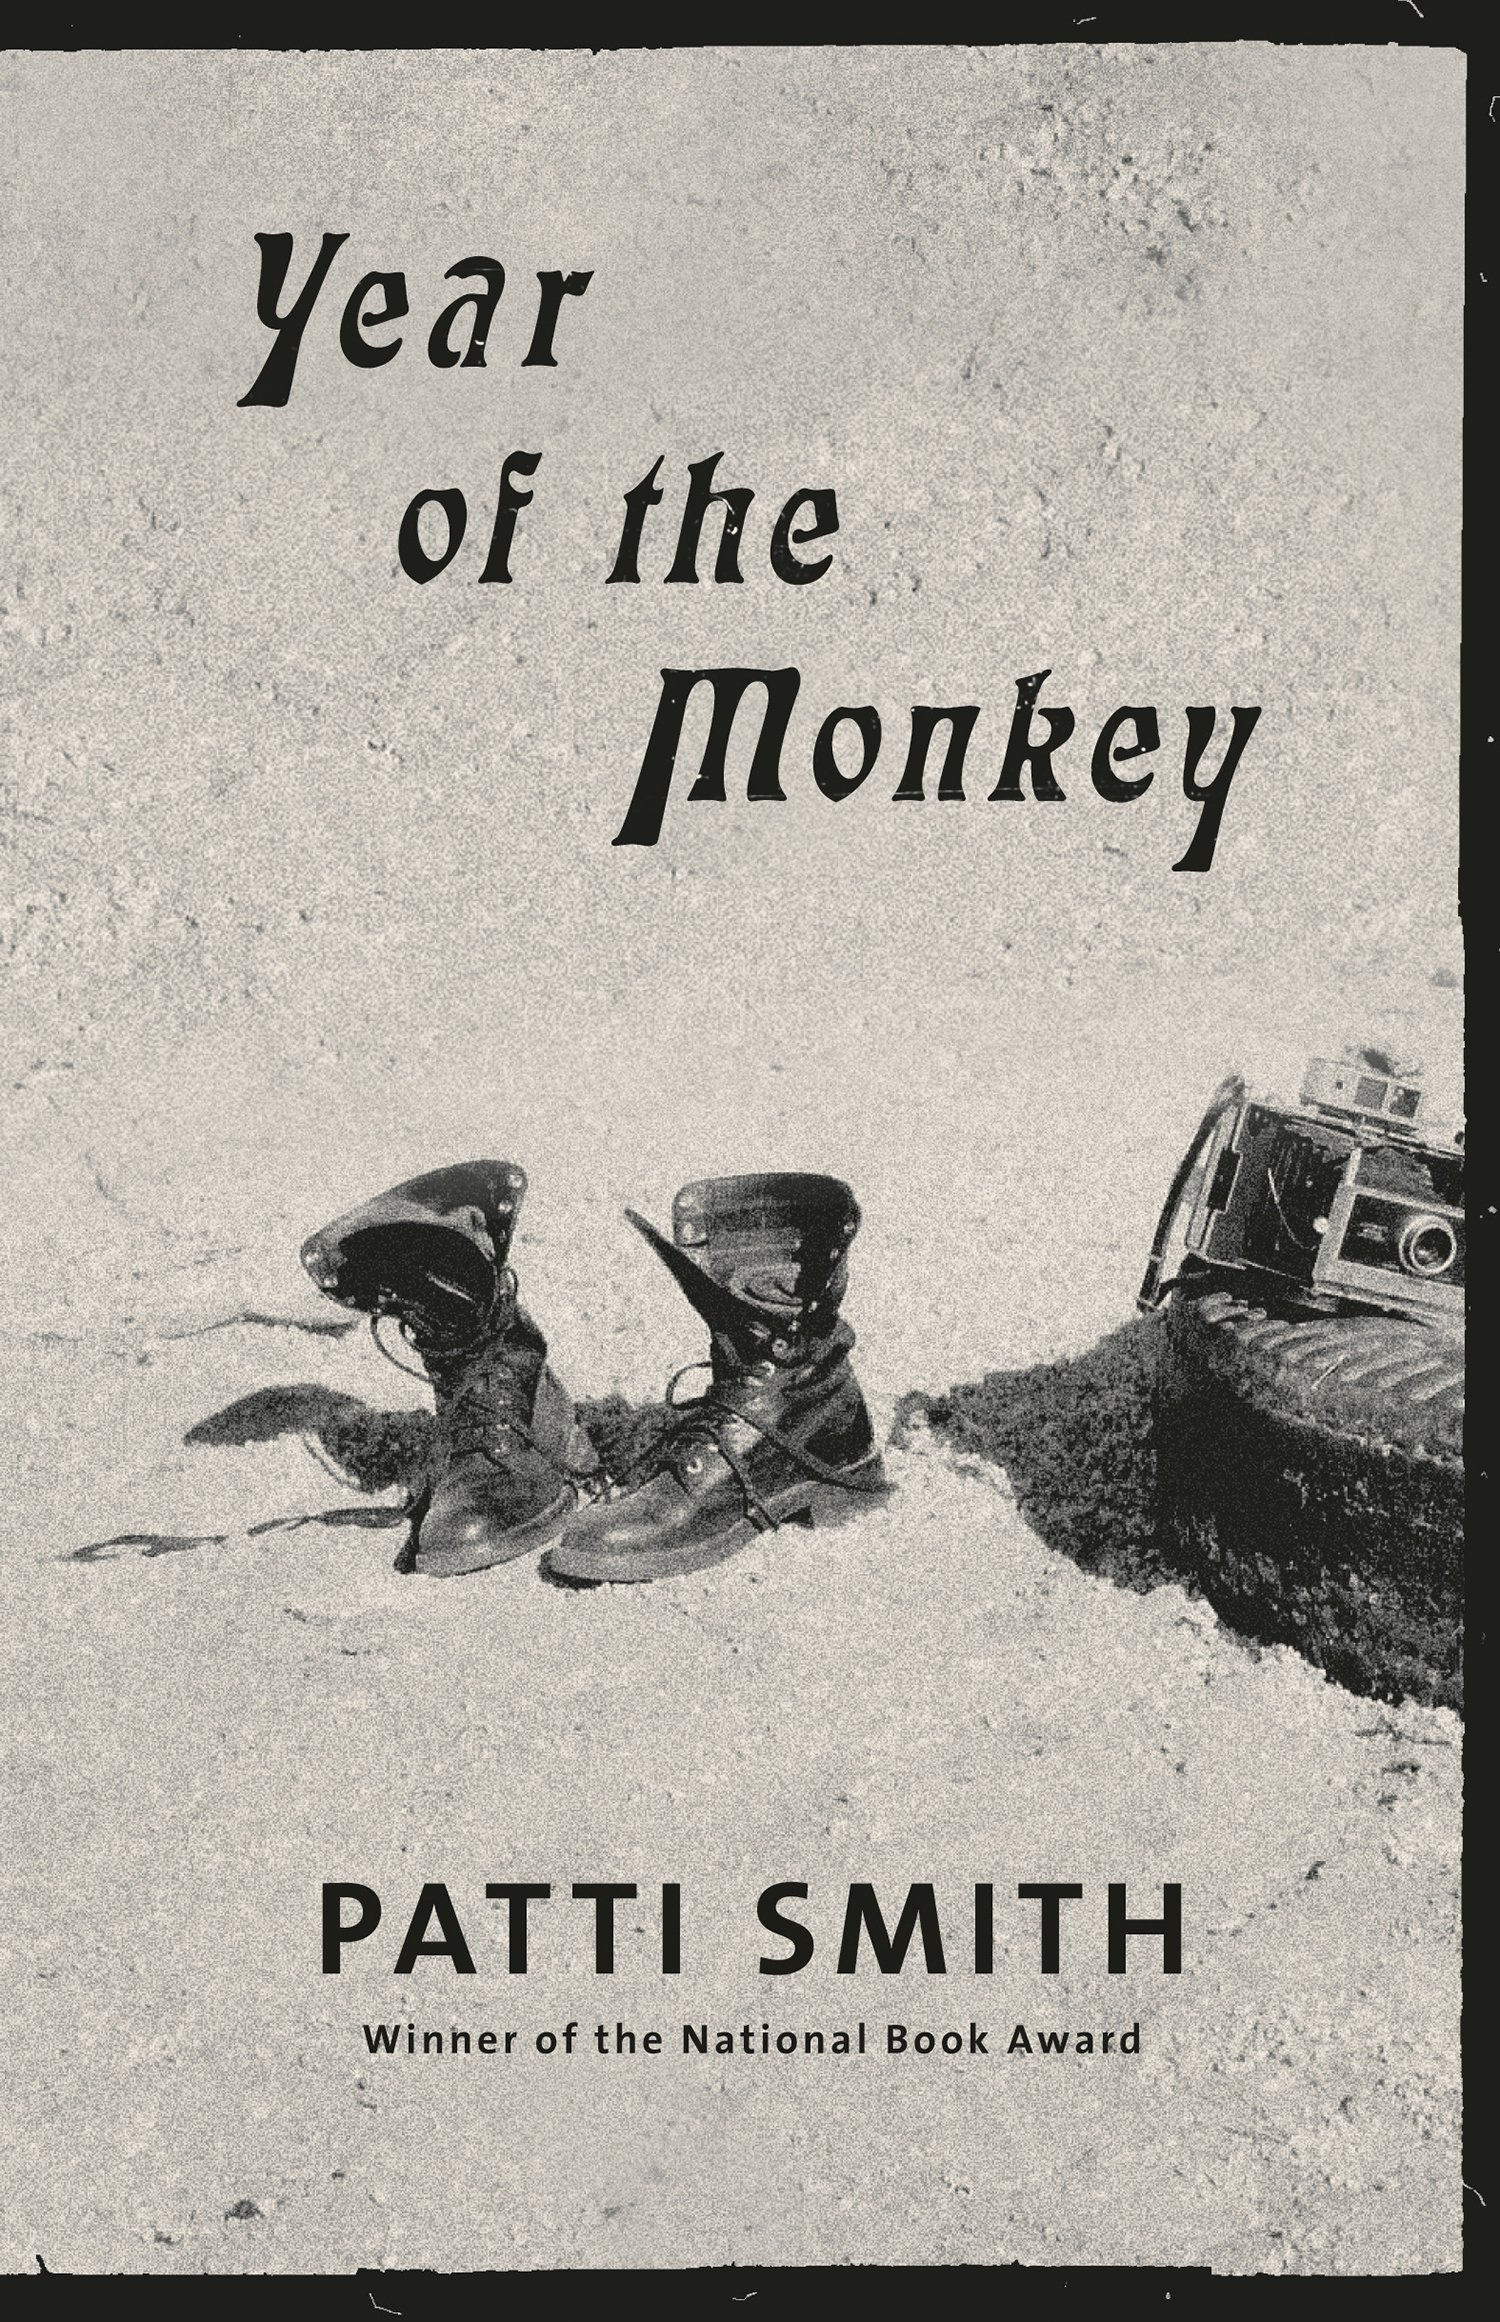 Patti Smith's new autobiographical tome is set in 2016